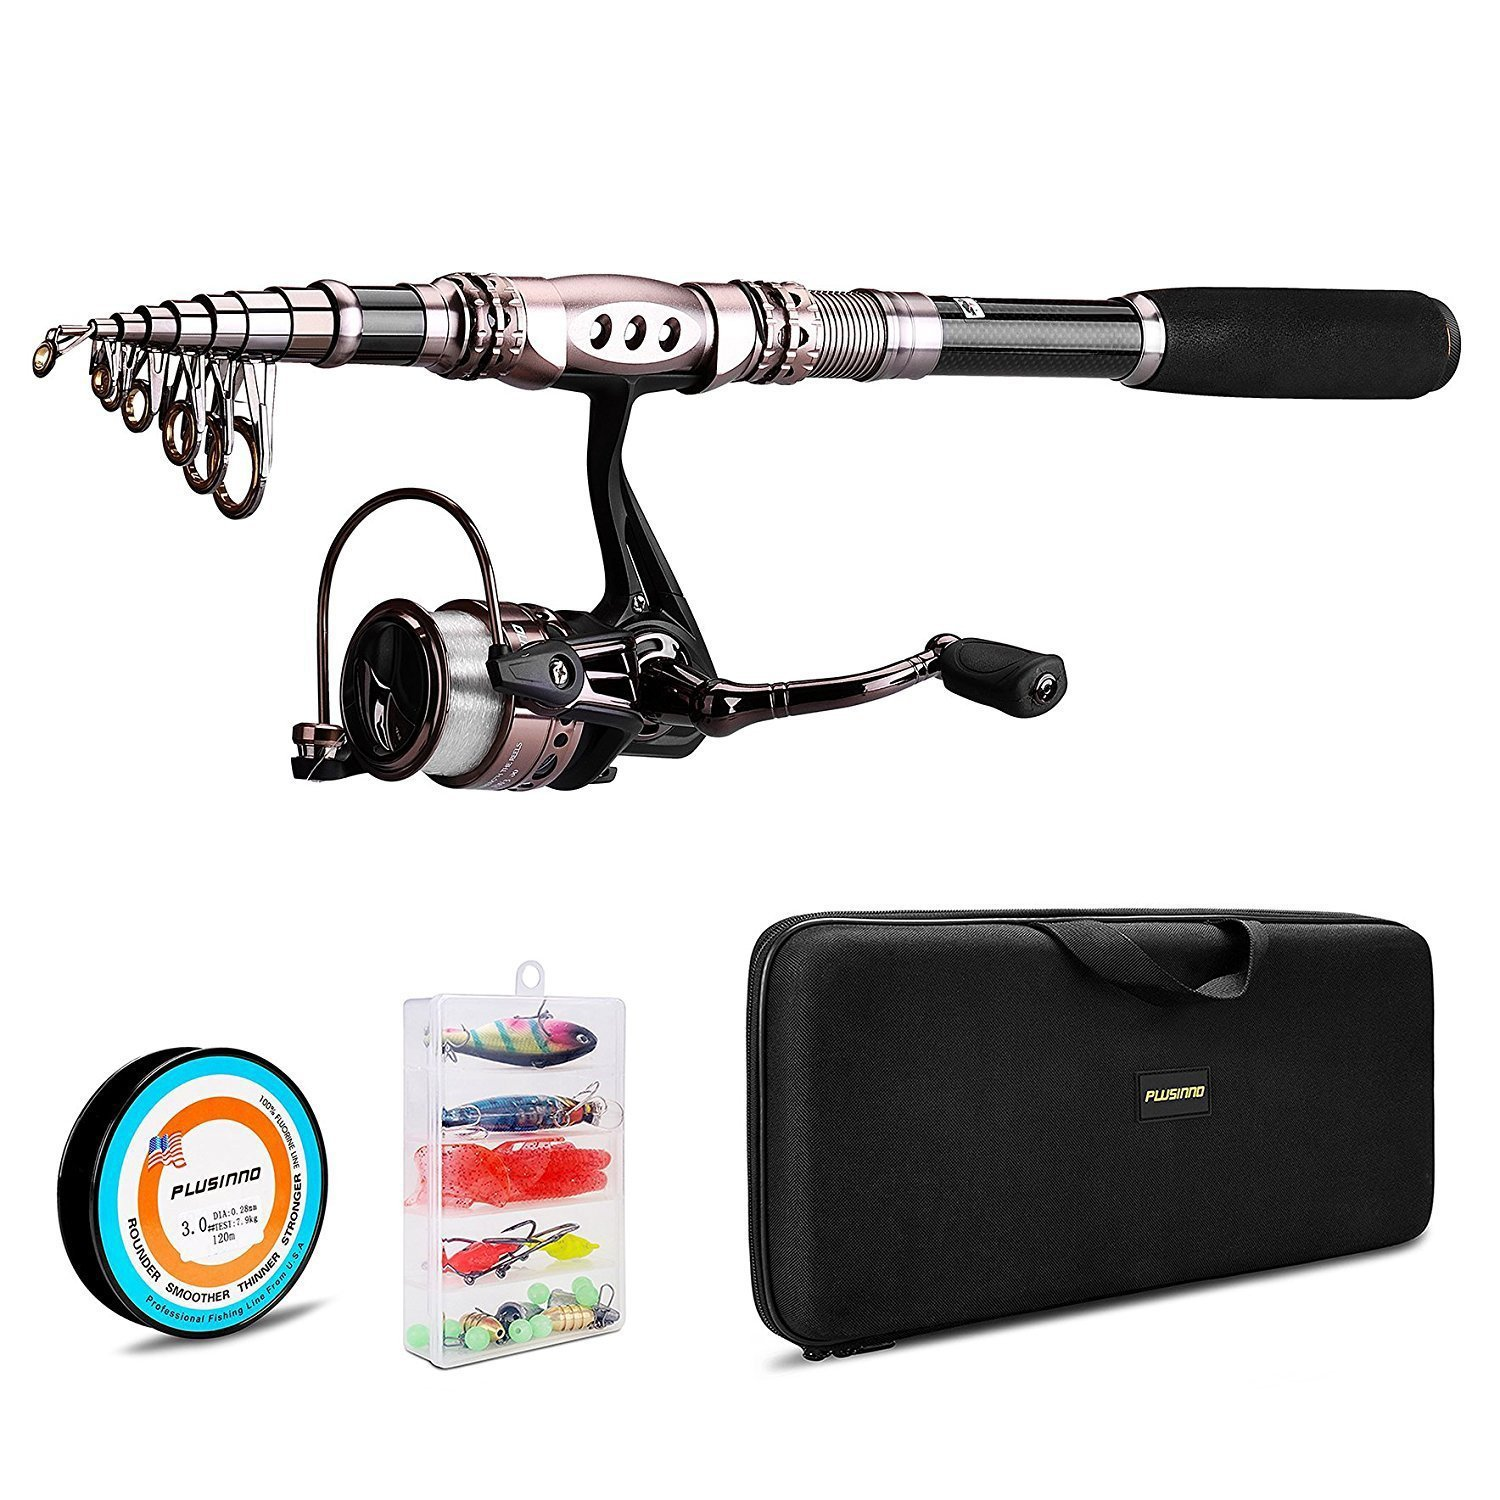 7. PLUSINNO Spinning Rod and Reel Combos